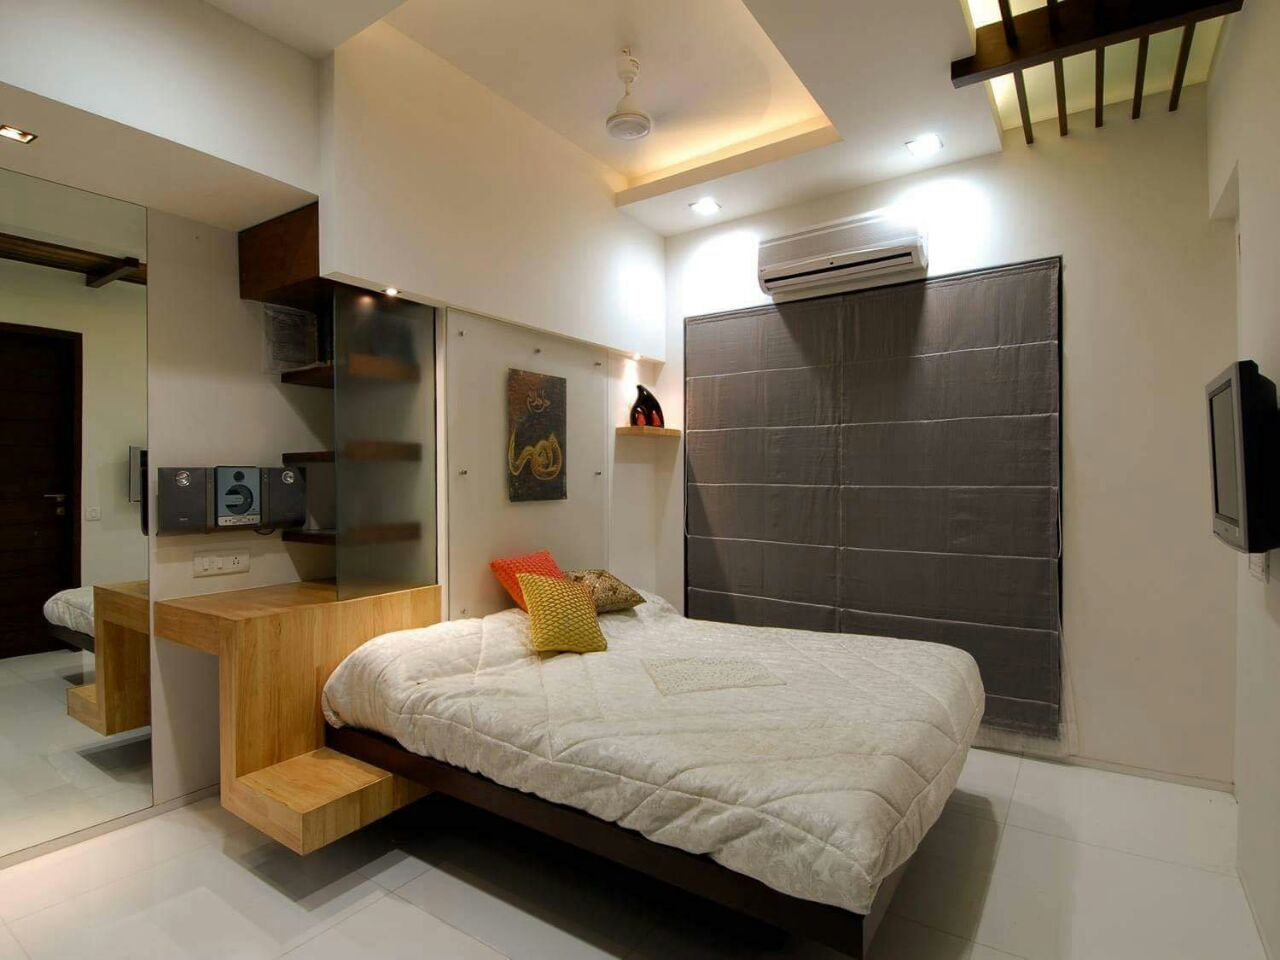 Pale Shade Interior In Bedroom With Wooden Furnishing by DD Jour Bedroom Modern   Interior Design Photos & Ideas